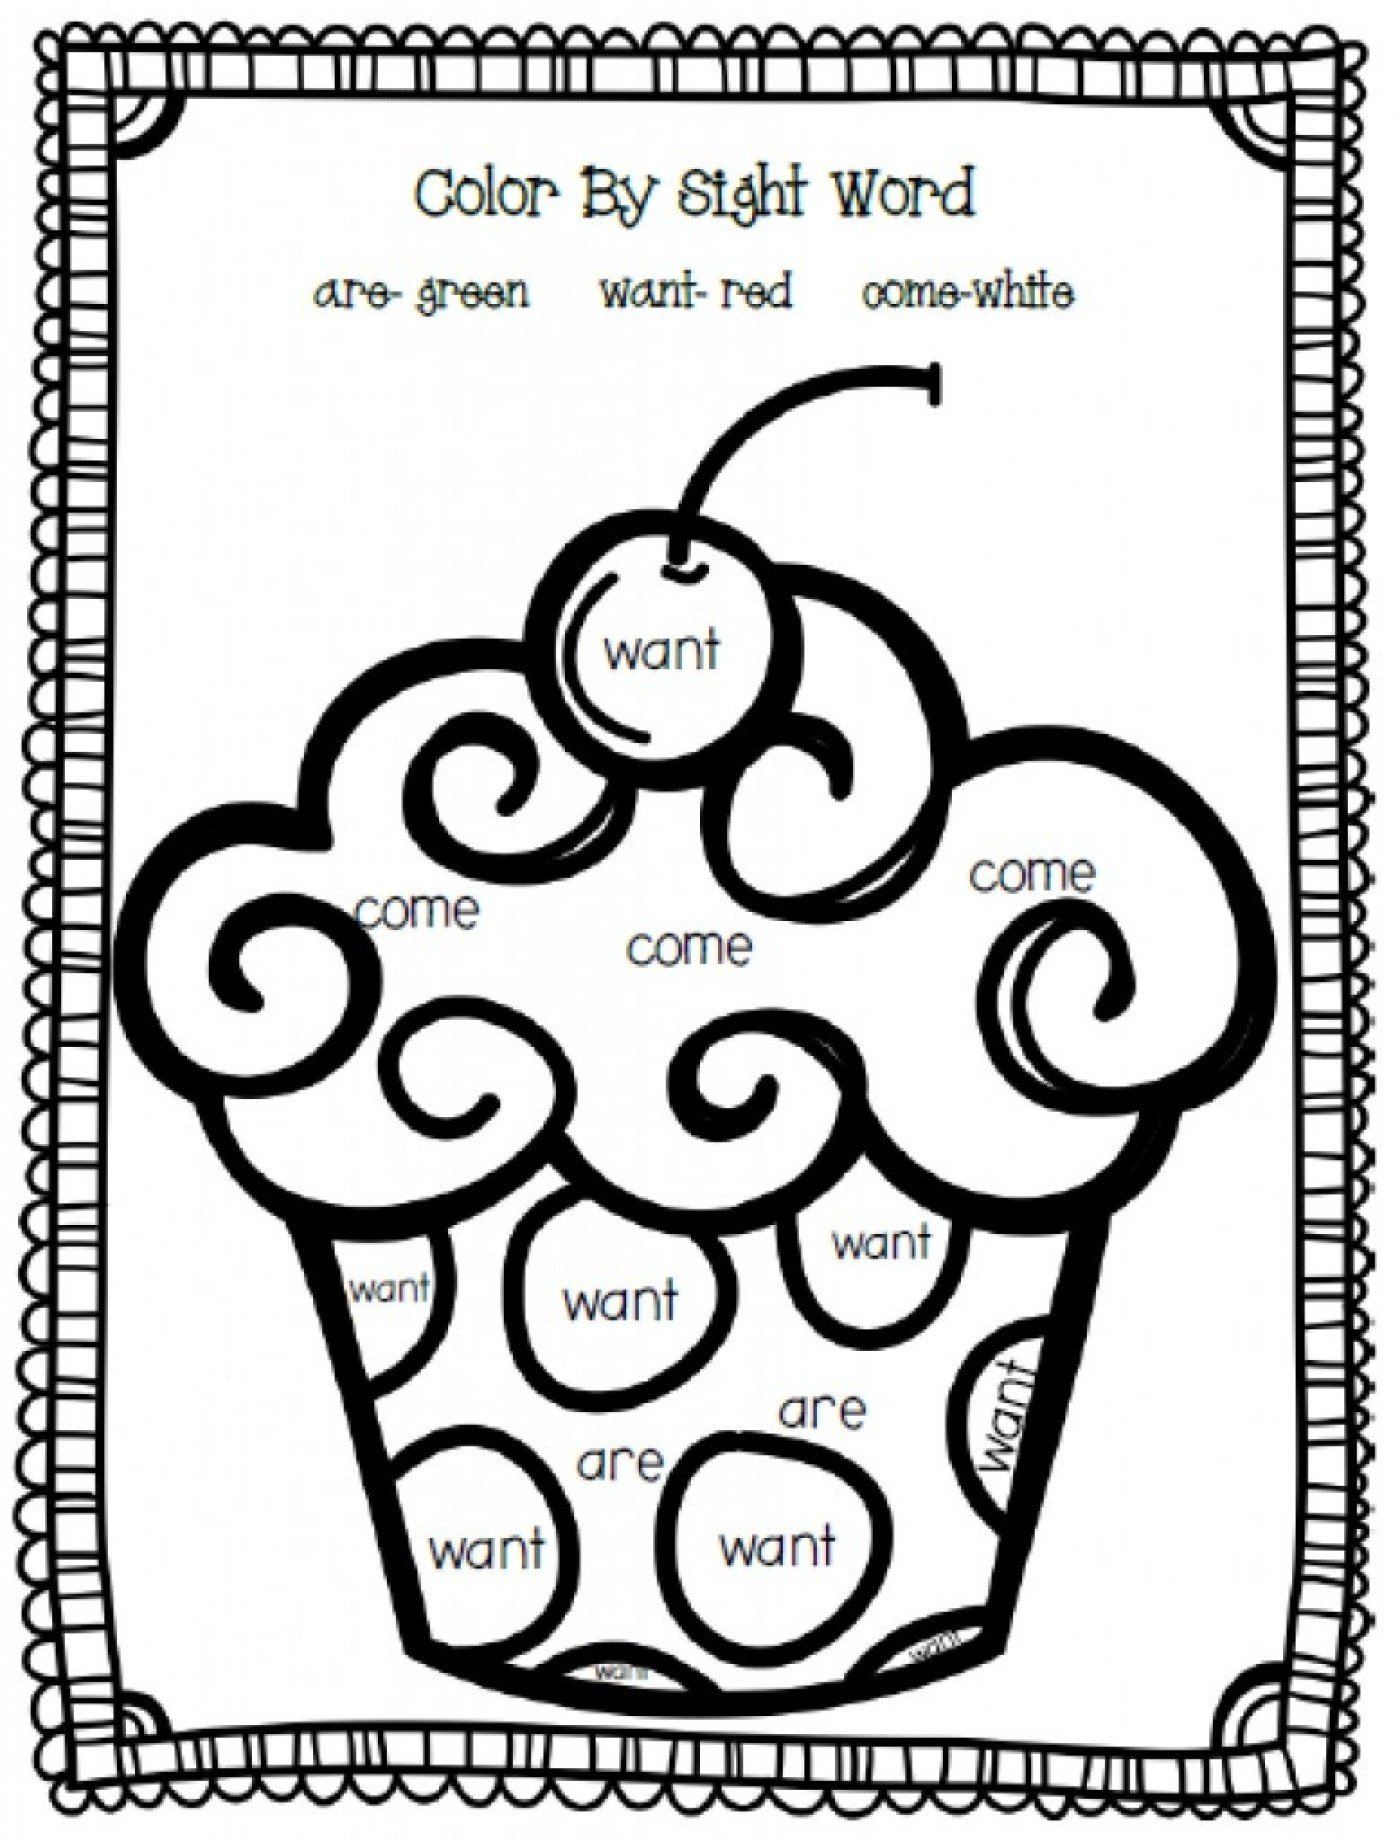 Free Color Word Worksheets Printableg Sight Word Pages Pdf format Free Download